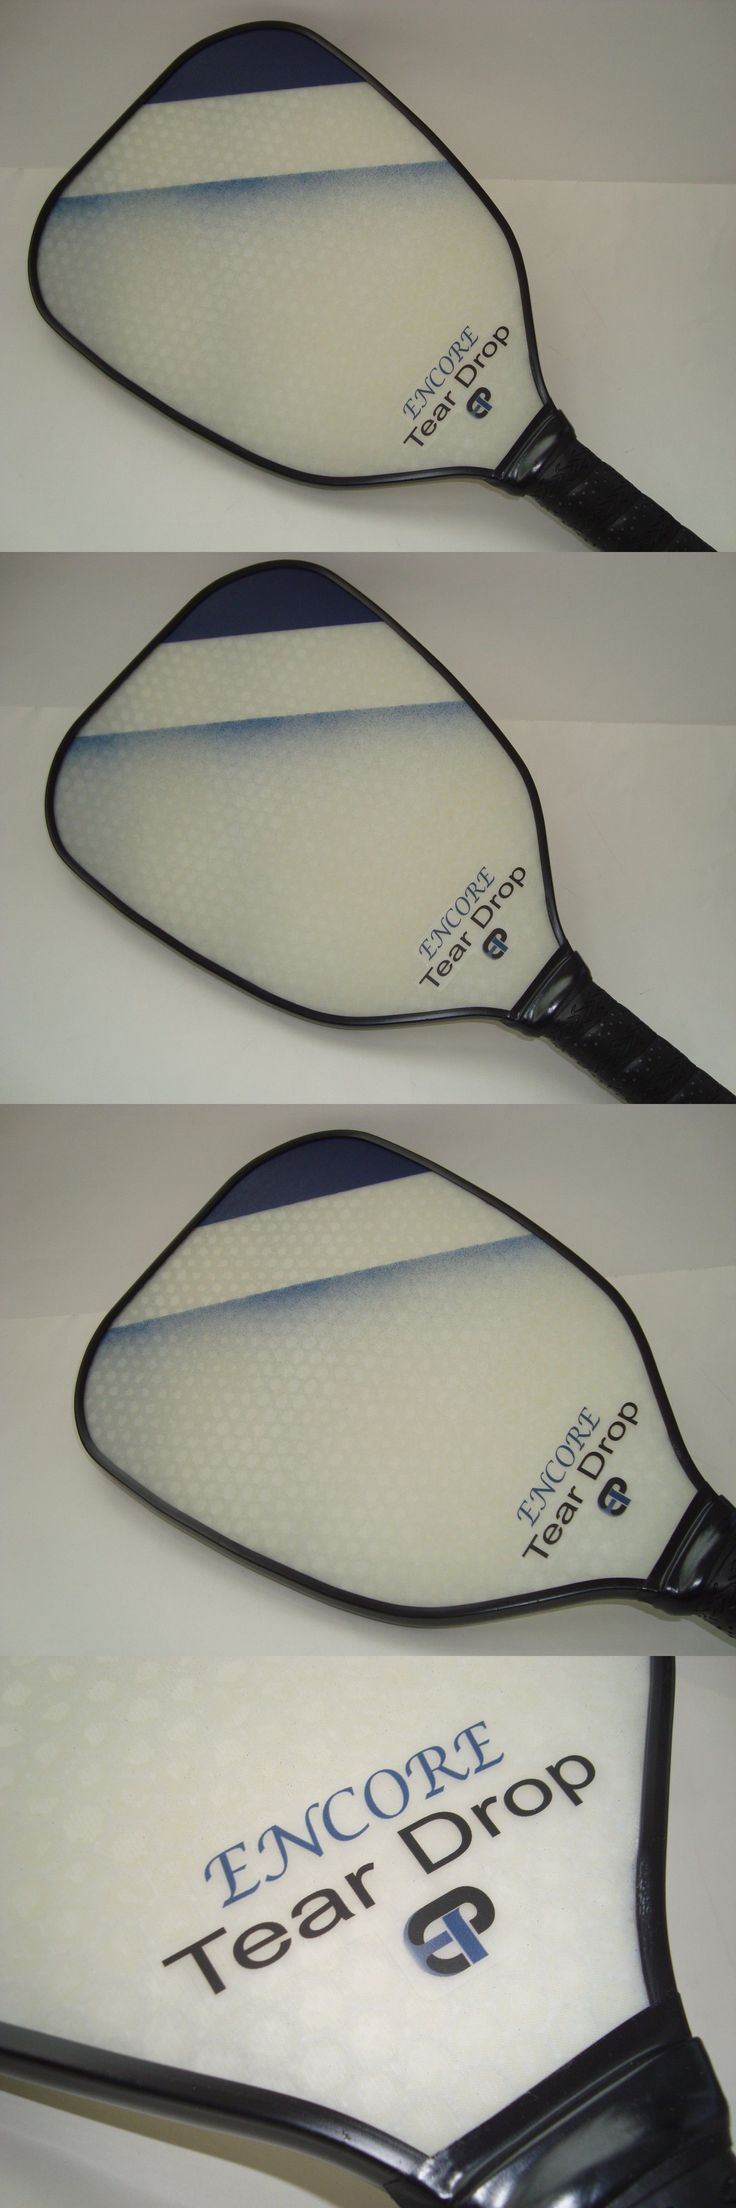 Other Tennis and Racquet Sports 159135: Super New Engage Encore Tear Drop Pickleball Paddle Enhanced Control Spin Blue BUY IT NOW ONLY: $79.0